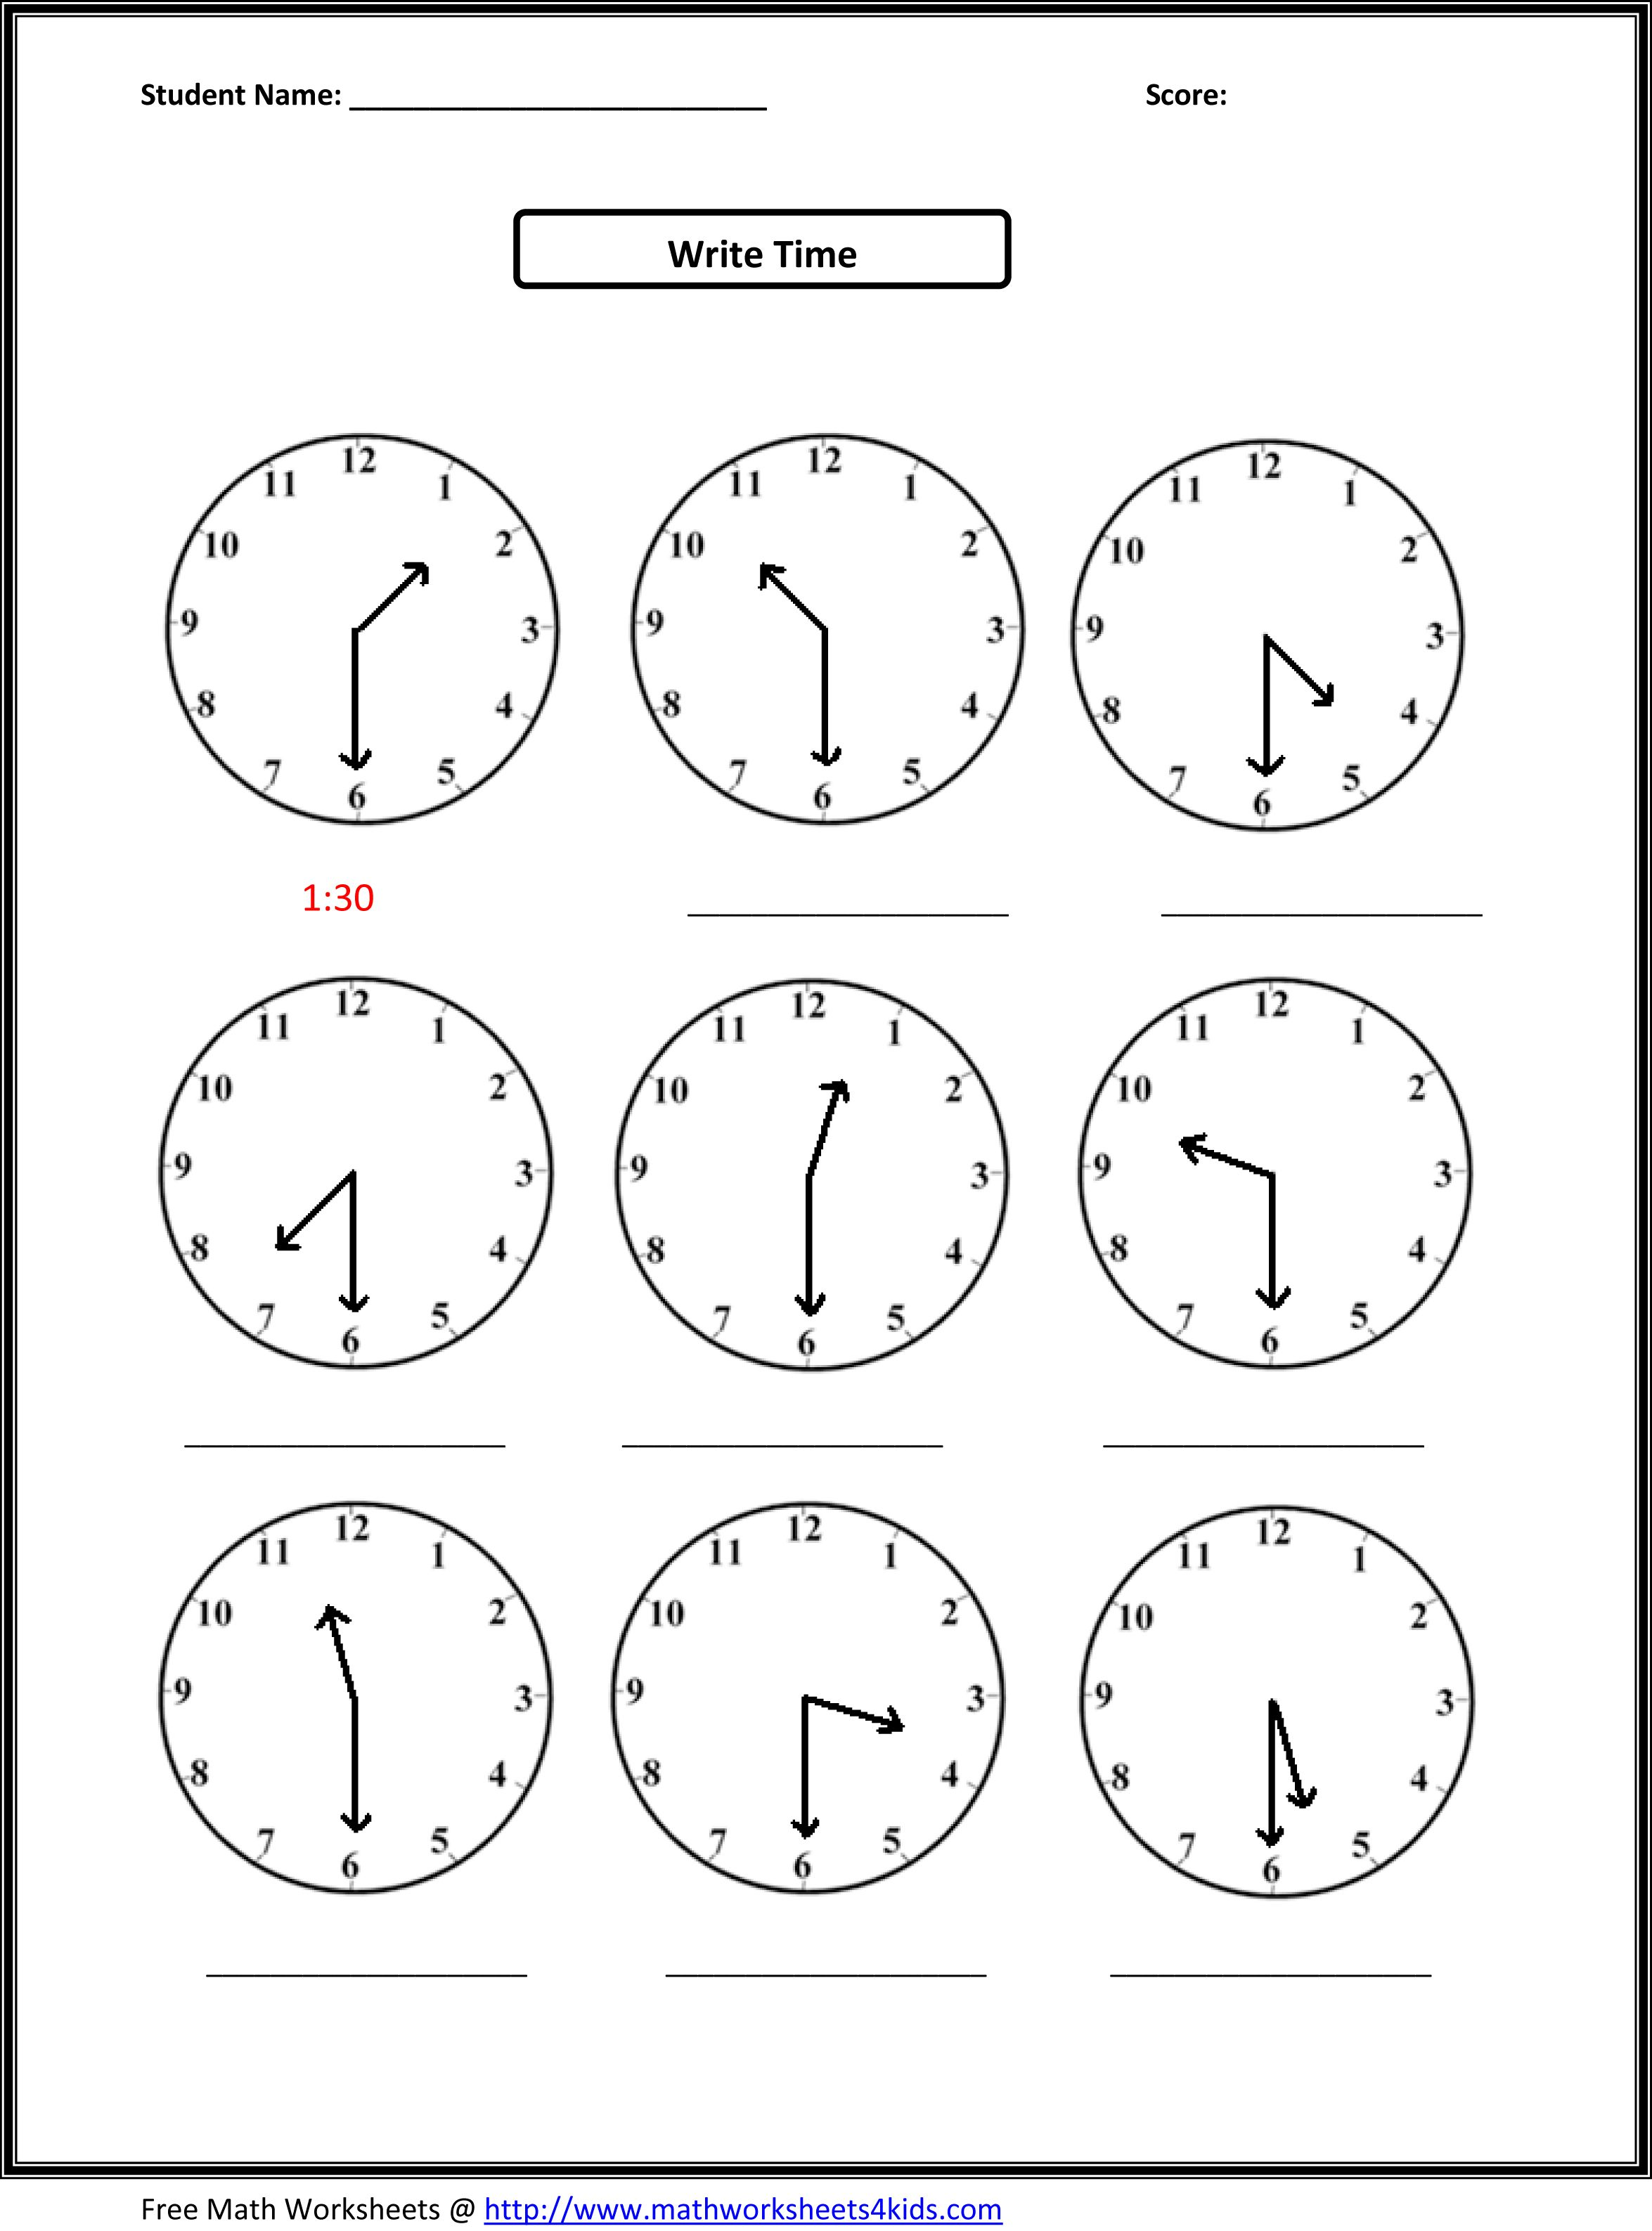 Weirdmailus  Pretty Worksheet On Time For Grade   Reocurent With Inspiring Free Printable Telling Time Worksheets Nd Grade  Reocurent With Endearing Sarah Plain And Tall Worksheets Also Grade  Comprehension Worksheets Free Printable In Addition Worksheet Names Of Ionic Compounds Answers And Proportion Problems Worksheet As Well As Physics Torque Worksheet Additionally Life Skills Worksheets High School From Reocurentcom With Weirdmailus  Inspiring Worksheet On Time For Grade   Reocurent With Endearing Free Printable Telling Time Worksheets Nd Grade  Reocurent And Pretty Sarah Plain And Tall Worksheets Also Grade  Comprehension Worksheets Free Printable In Addition Worksheet Names Of Ionic Compounds Answers From Reocurentcom